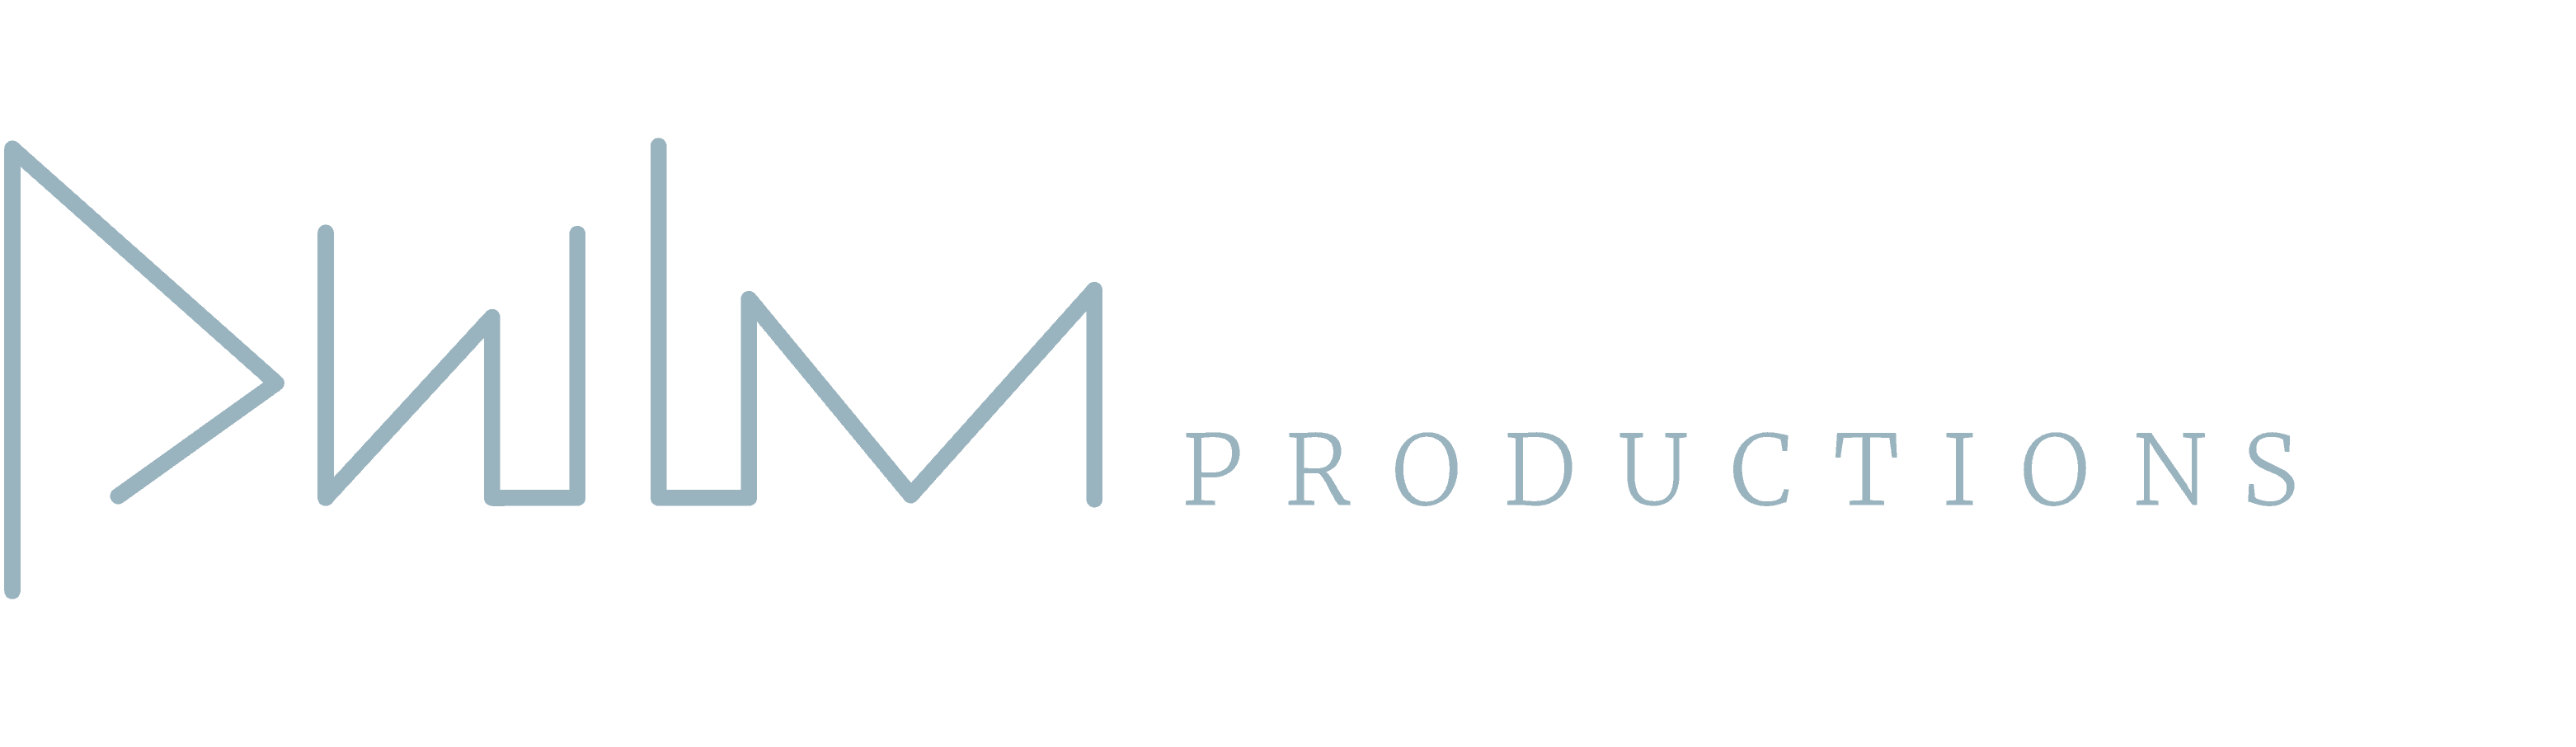 Philm Productions logo